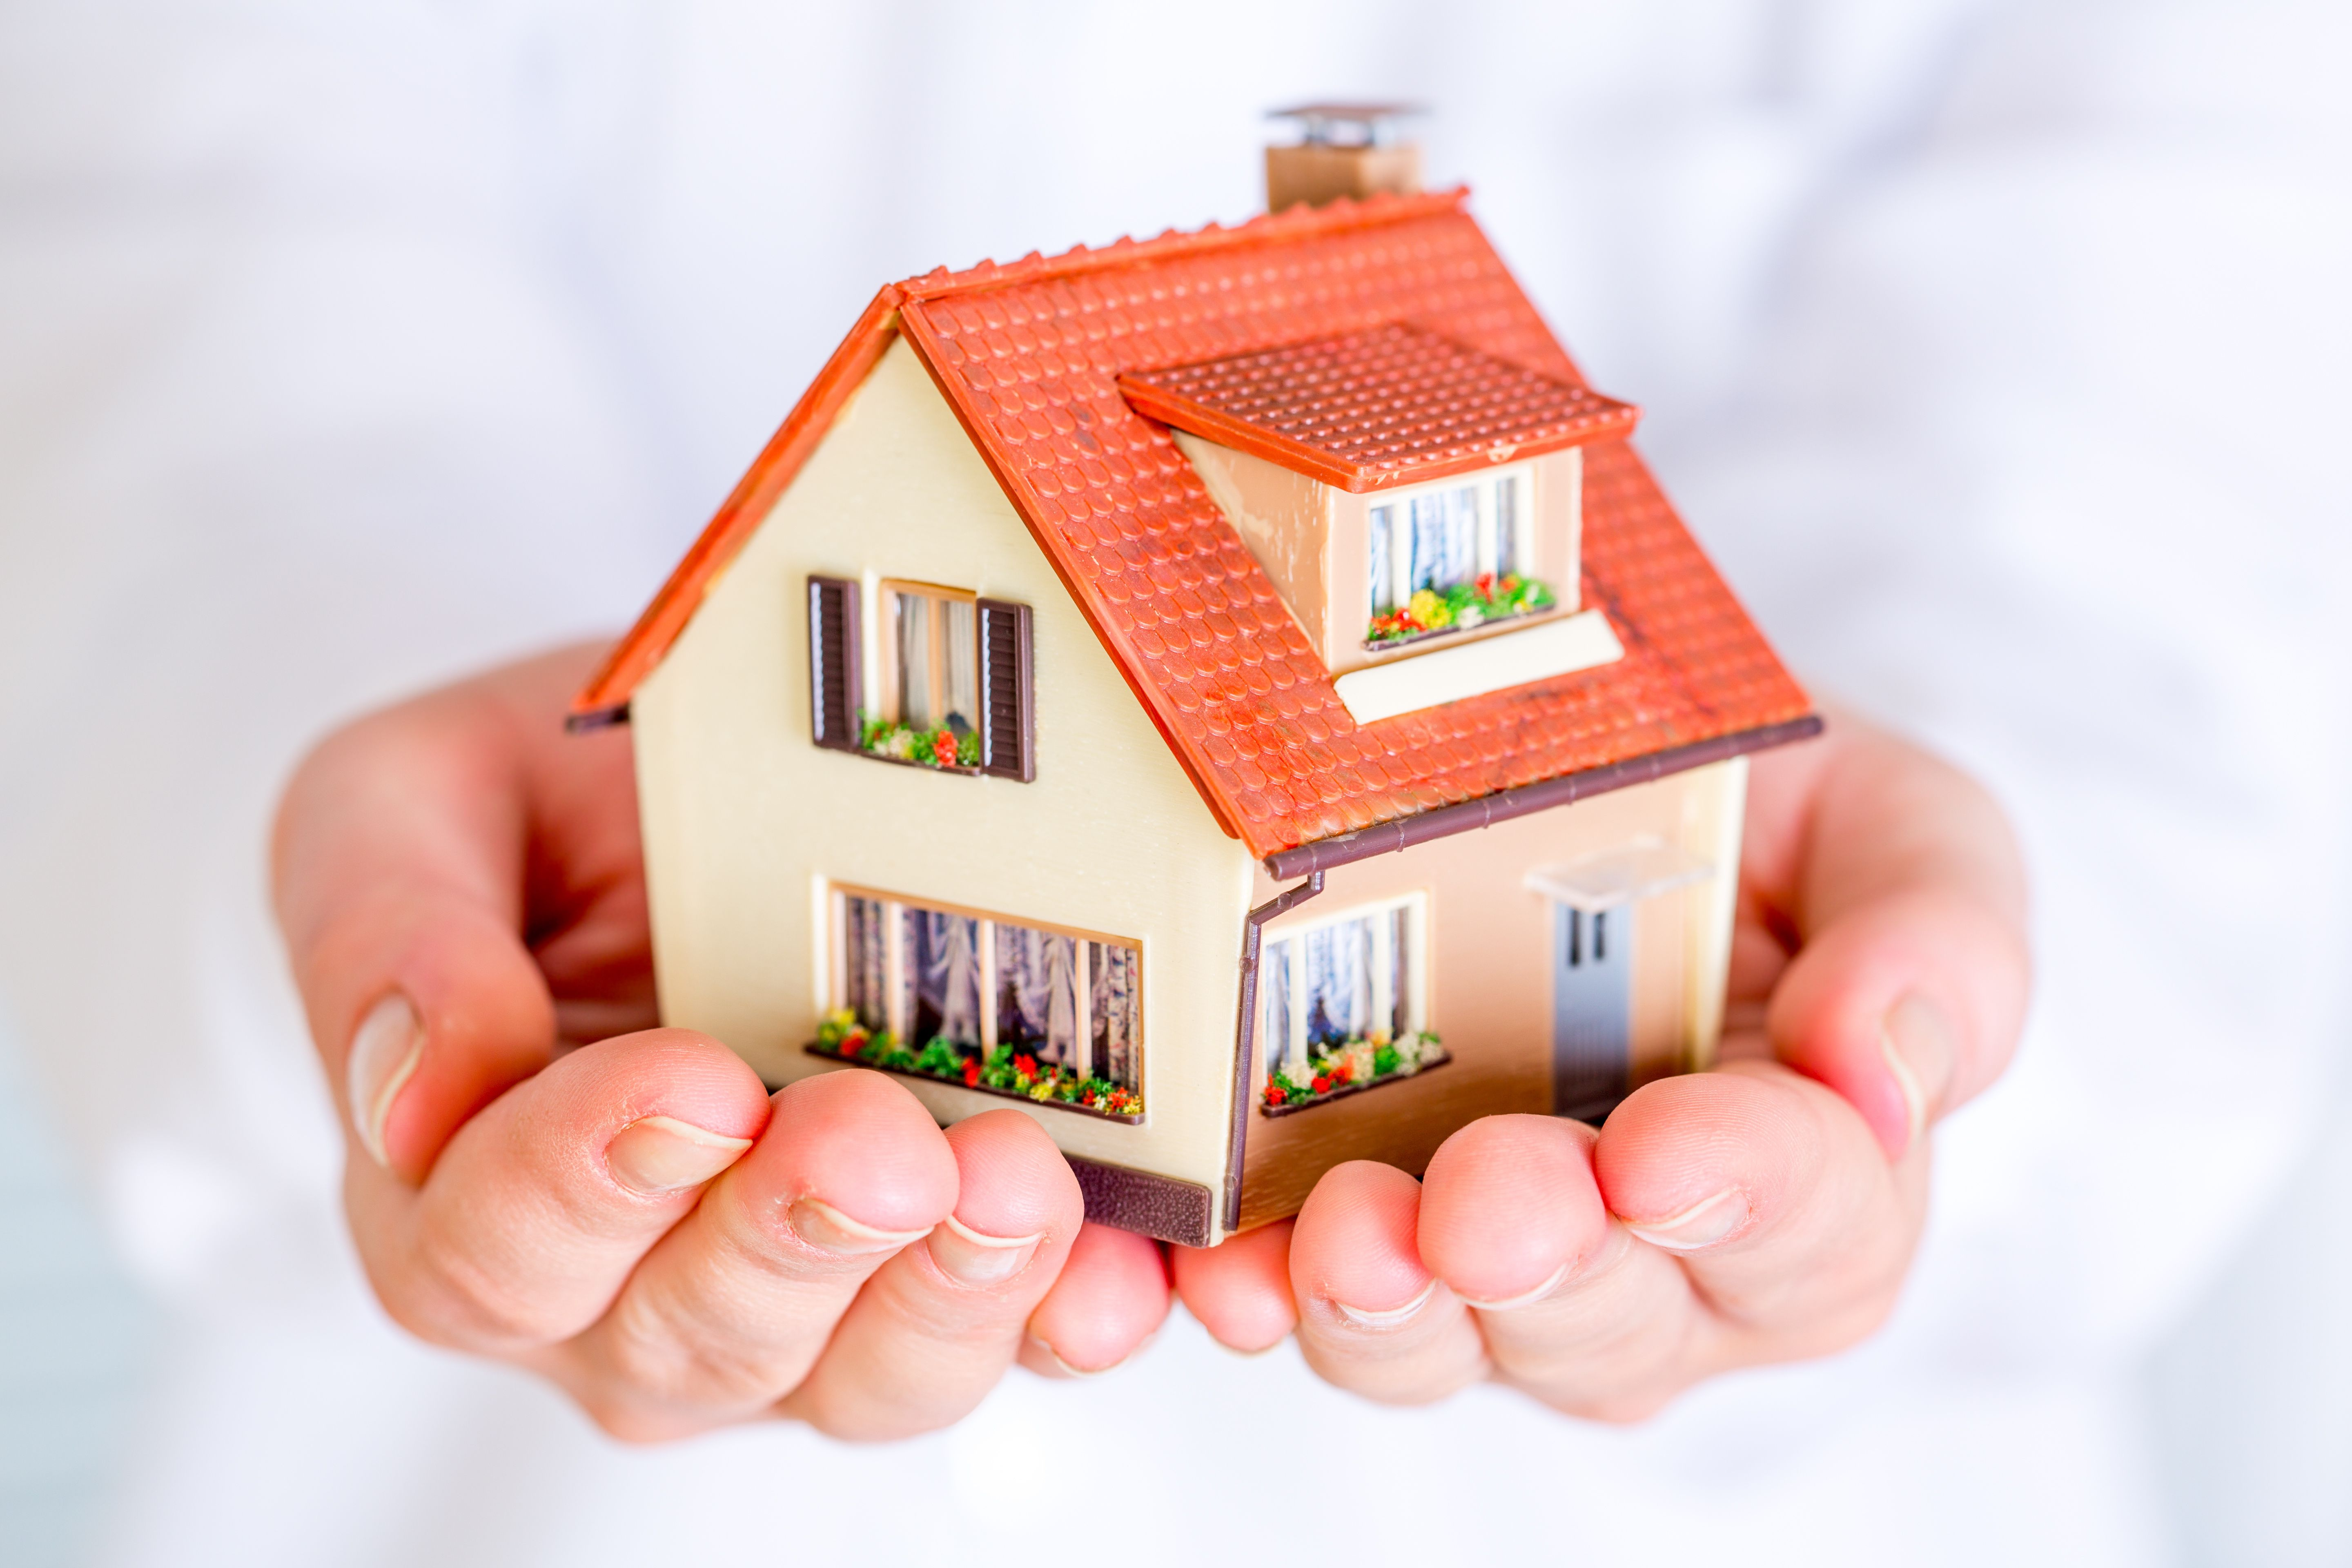 Pin On Real Estate Tips For Realtors And Buyers